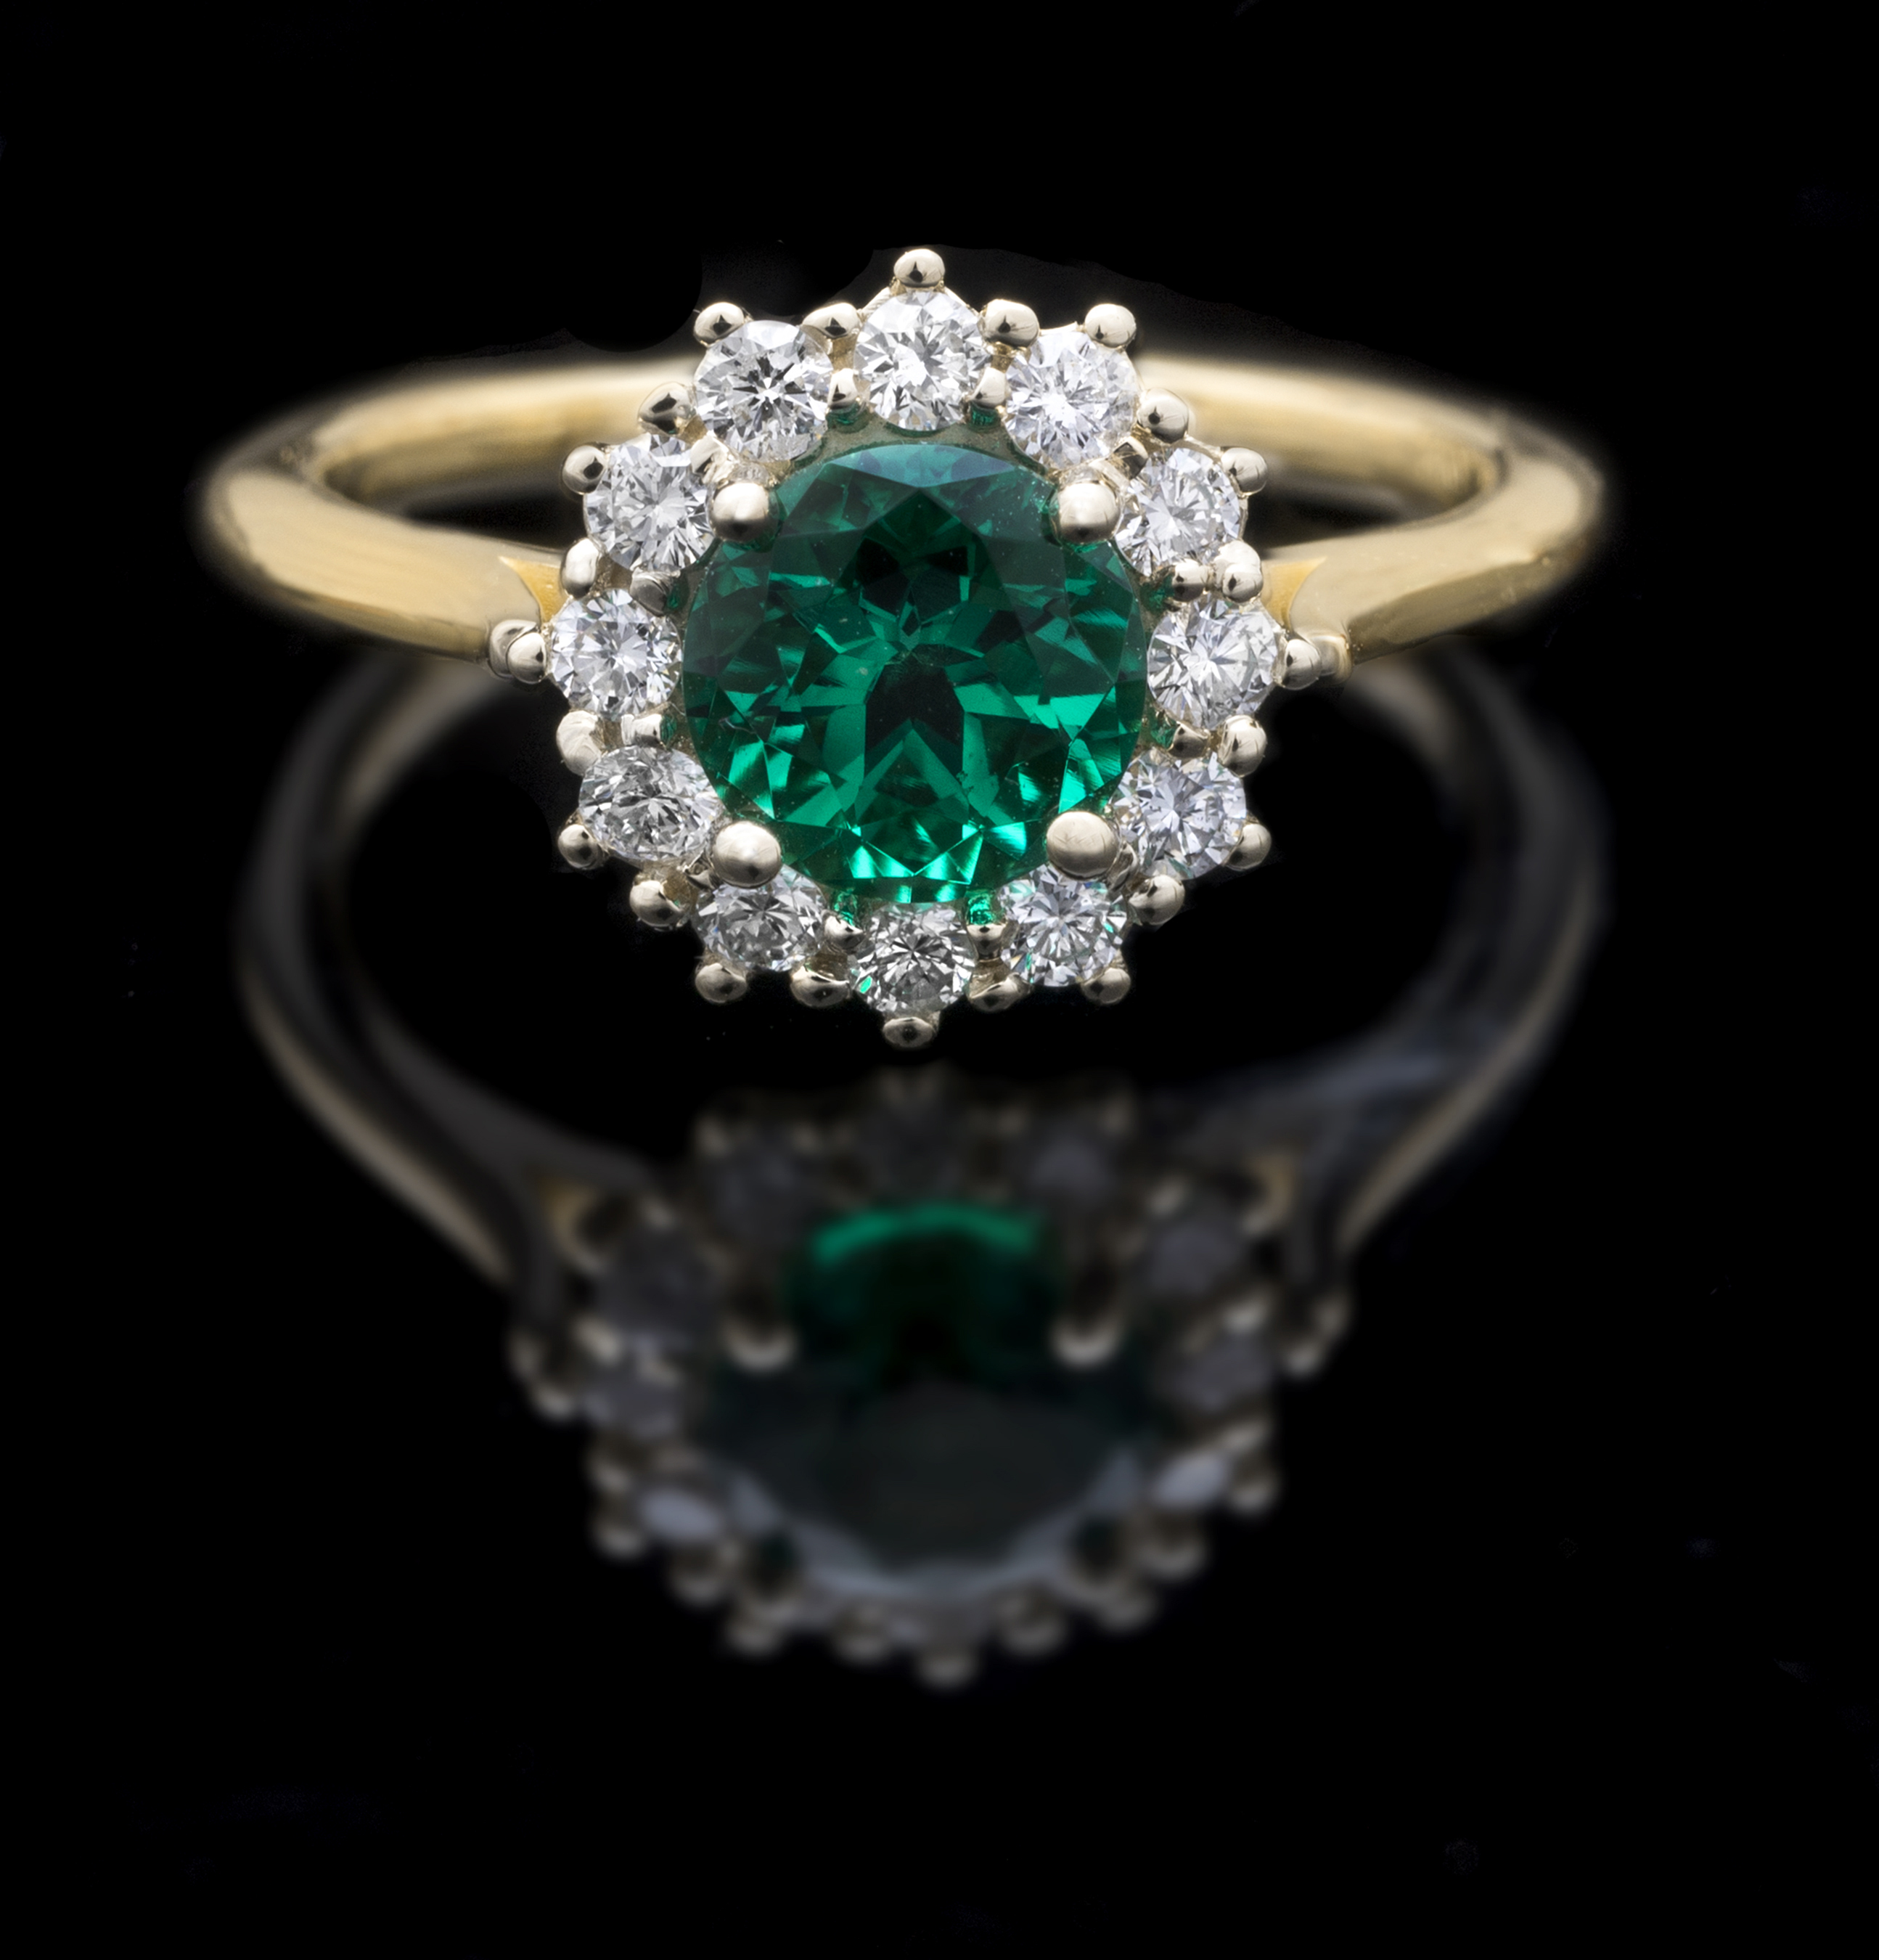 in rings emerald diamond ring gold white and image emeral halo oval